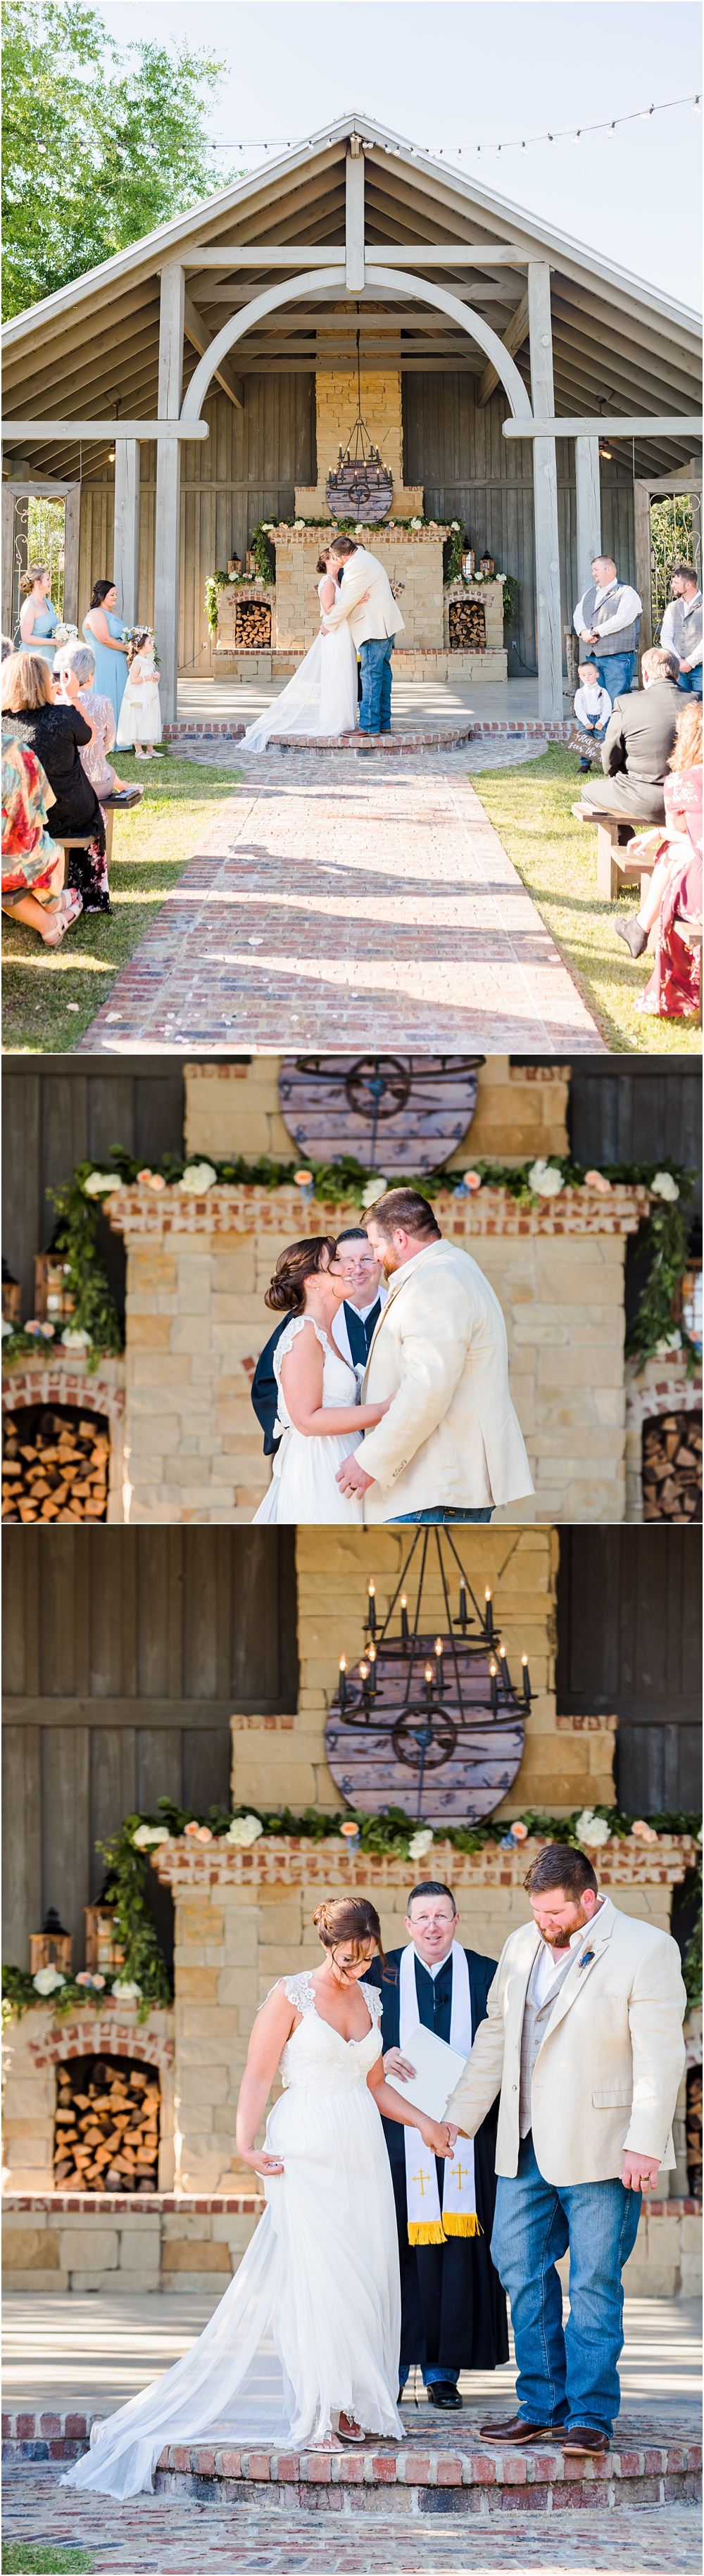 king-southern-lea-farms-vernon-florida-wedding-kiersten-stevenson-photography-(178-of-578).jpg